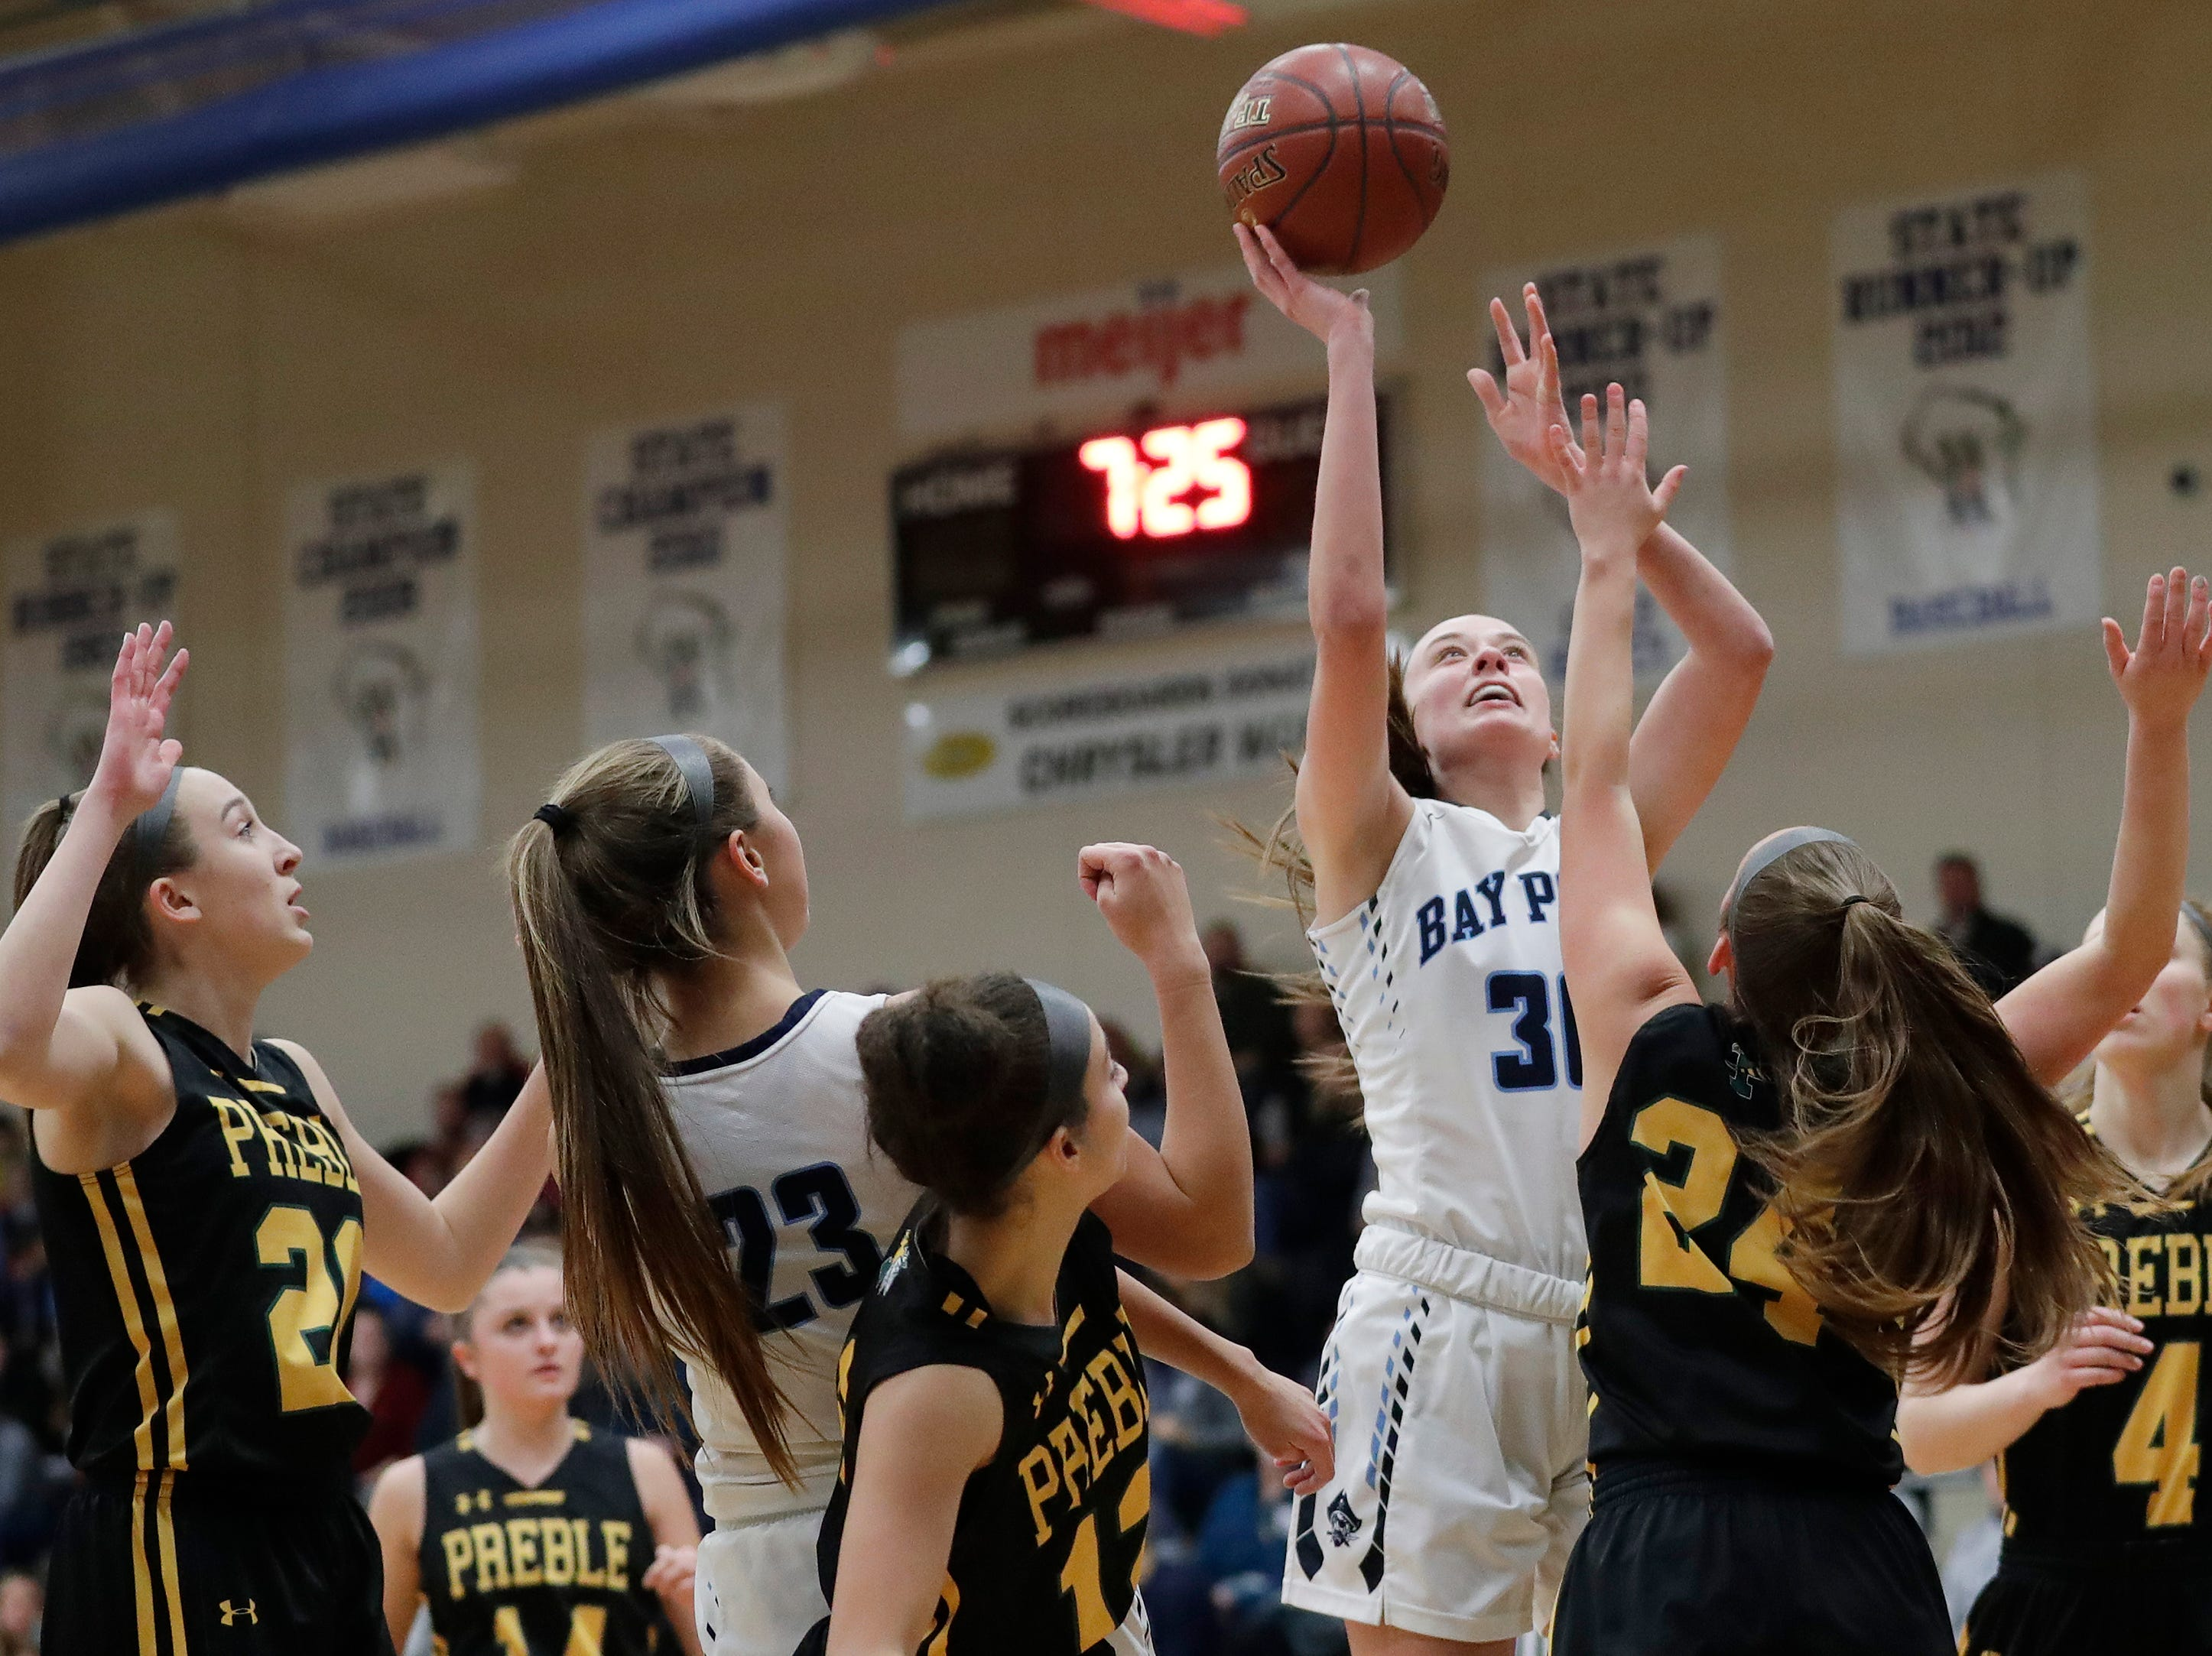 Bay Port's Mady Draak (30) shoots against Green Bay Preble in an FRCC girls basketball game at Bay Port high school on Friday, February 8, 2019 in Suamico, Wis.